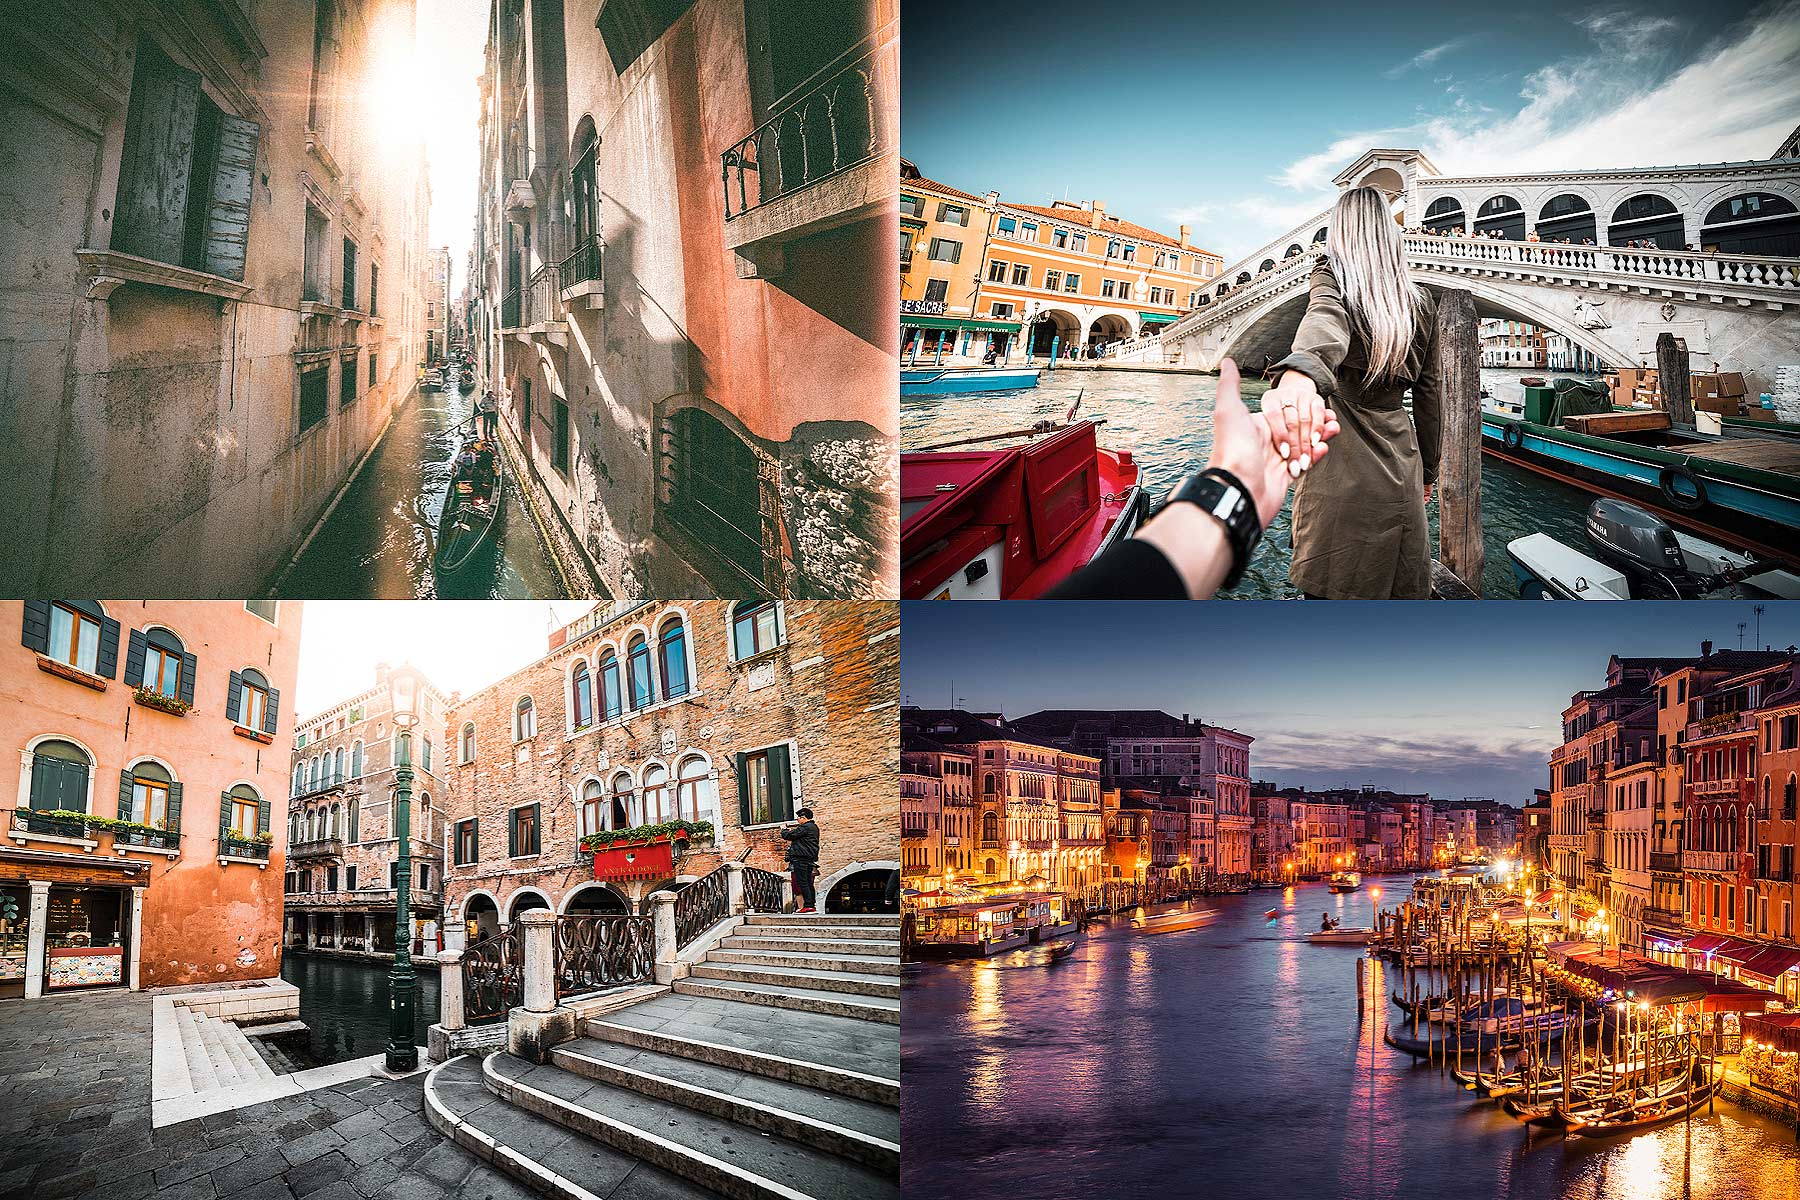 Venice, Italy Photo Collection by picjumbo